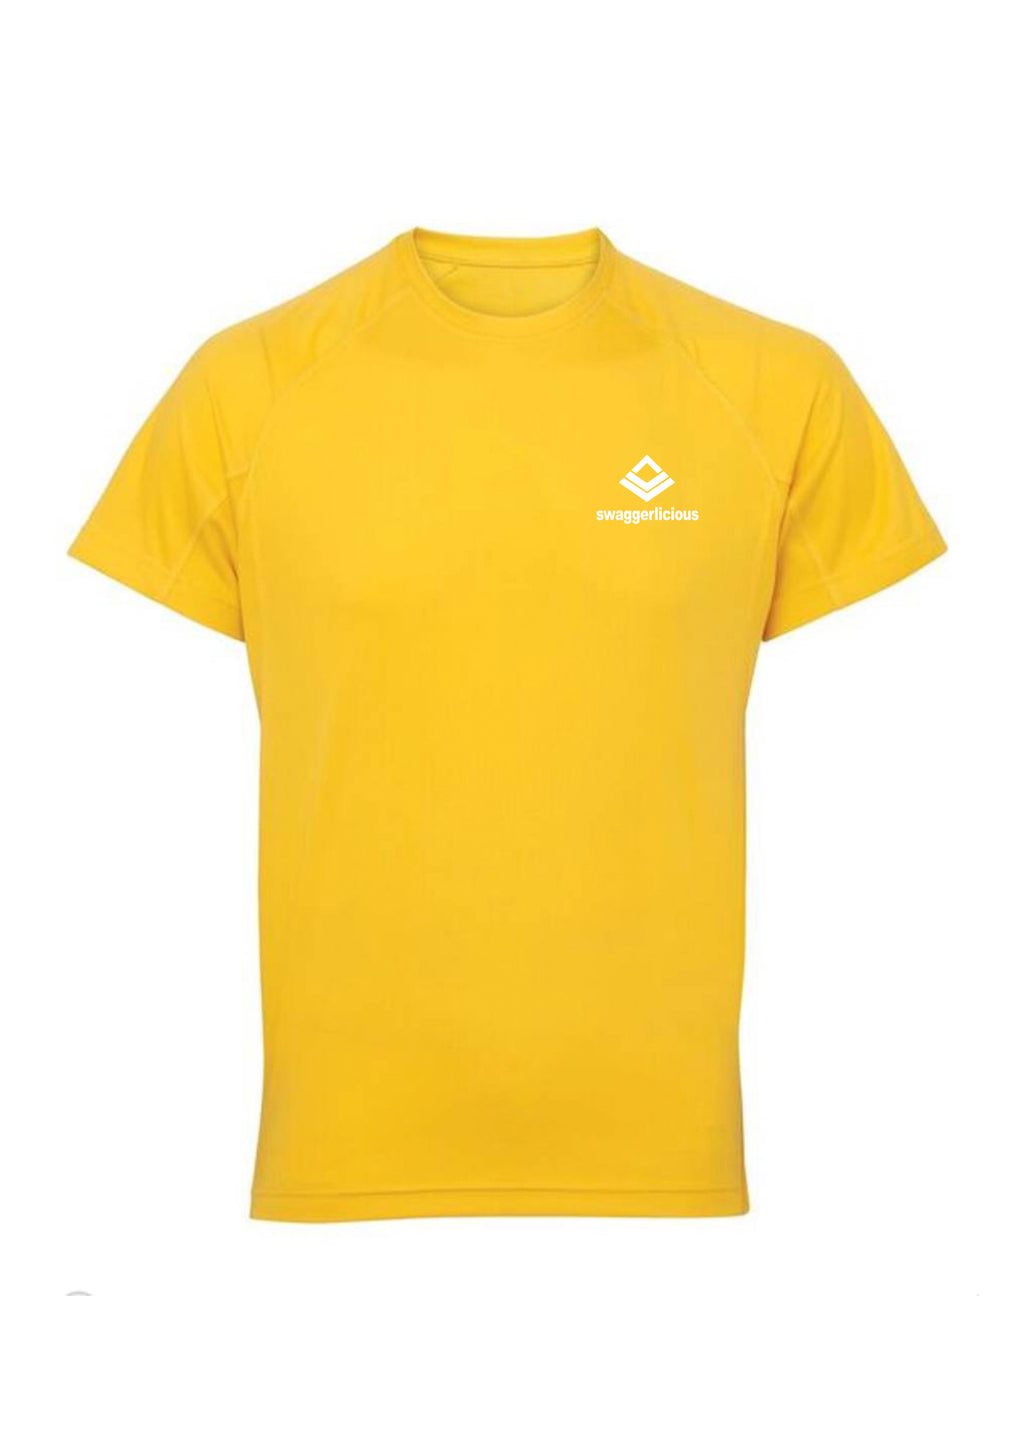 Sun Yellow Swaggerlicious Active Dry T-Shirt with White Logo - swaggerlicious-clothing.com